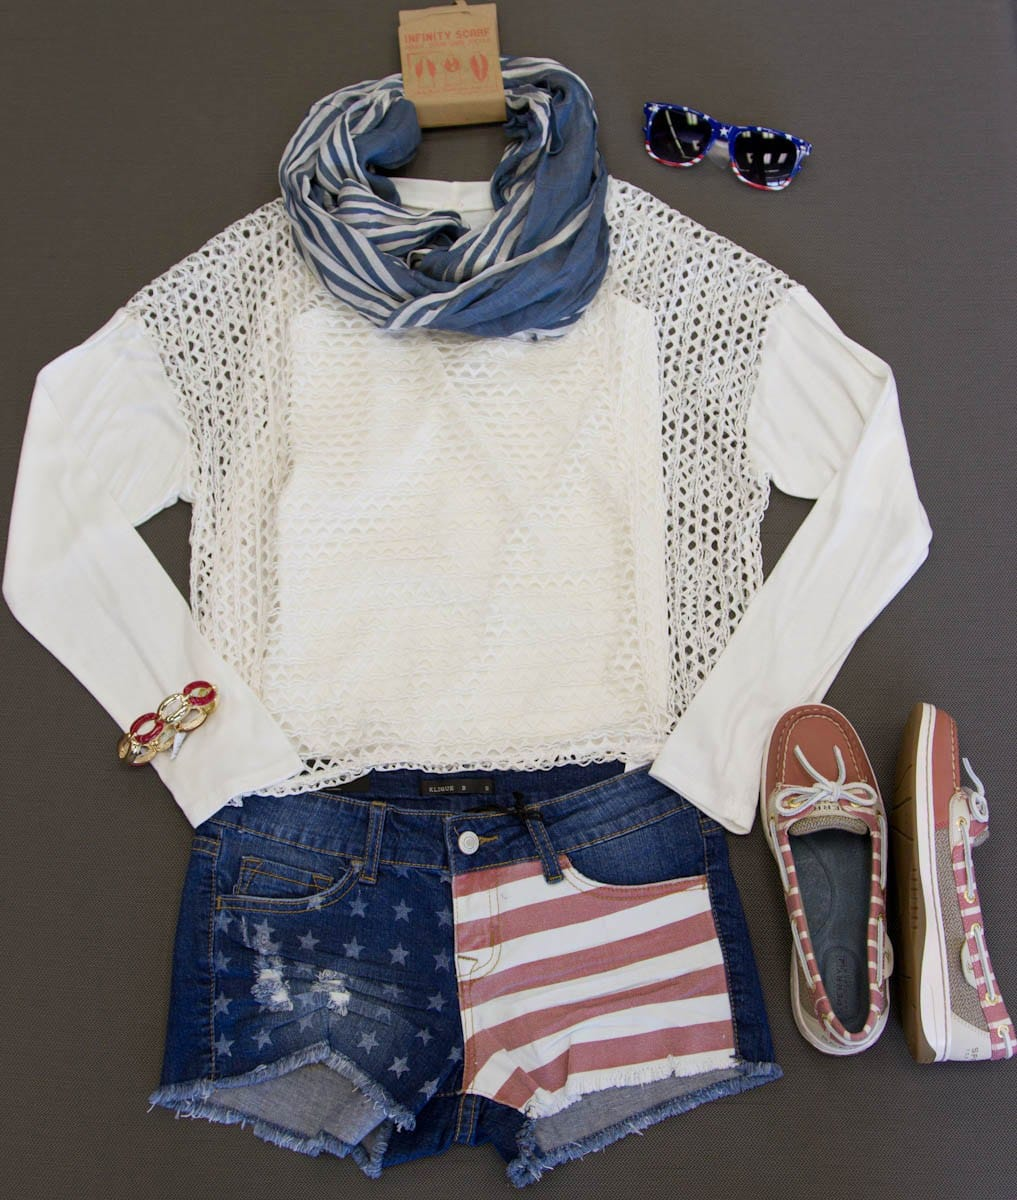 Mesh and Red, White, and Blue are ways you can add to your Nautical inspired look.